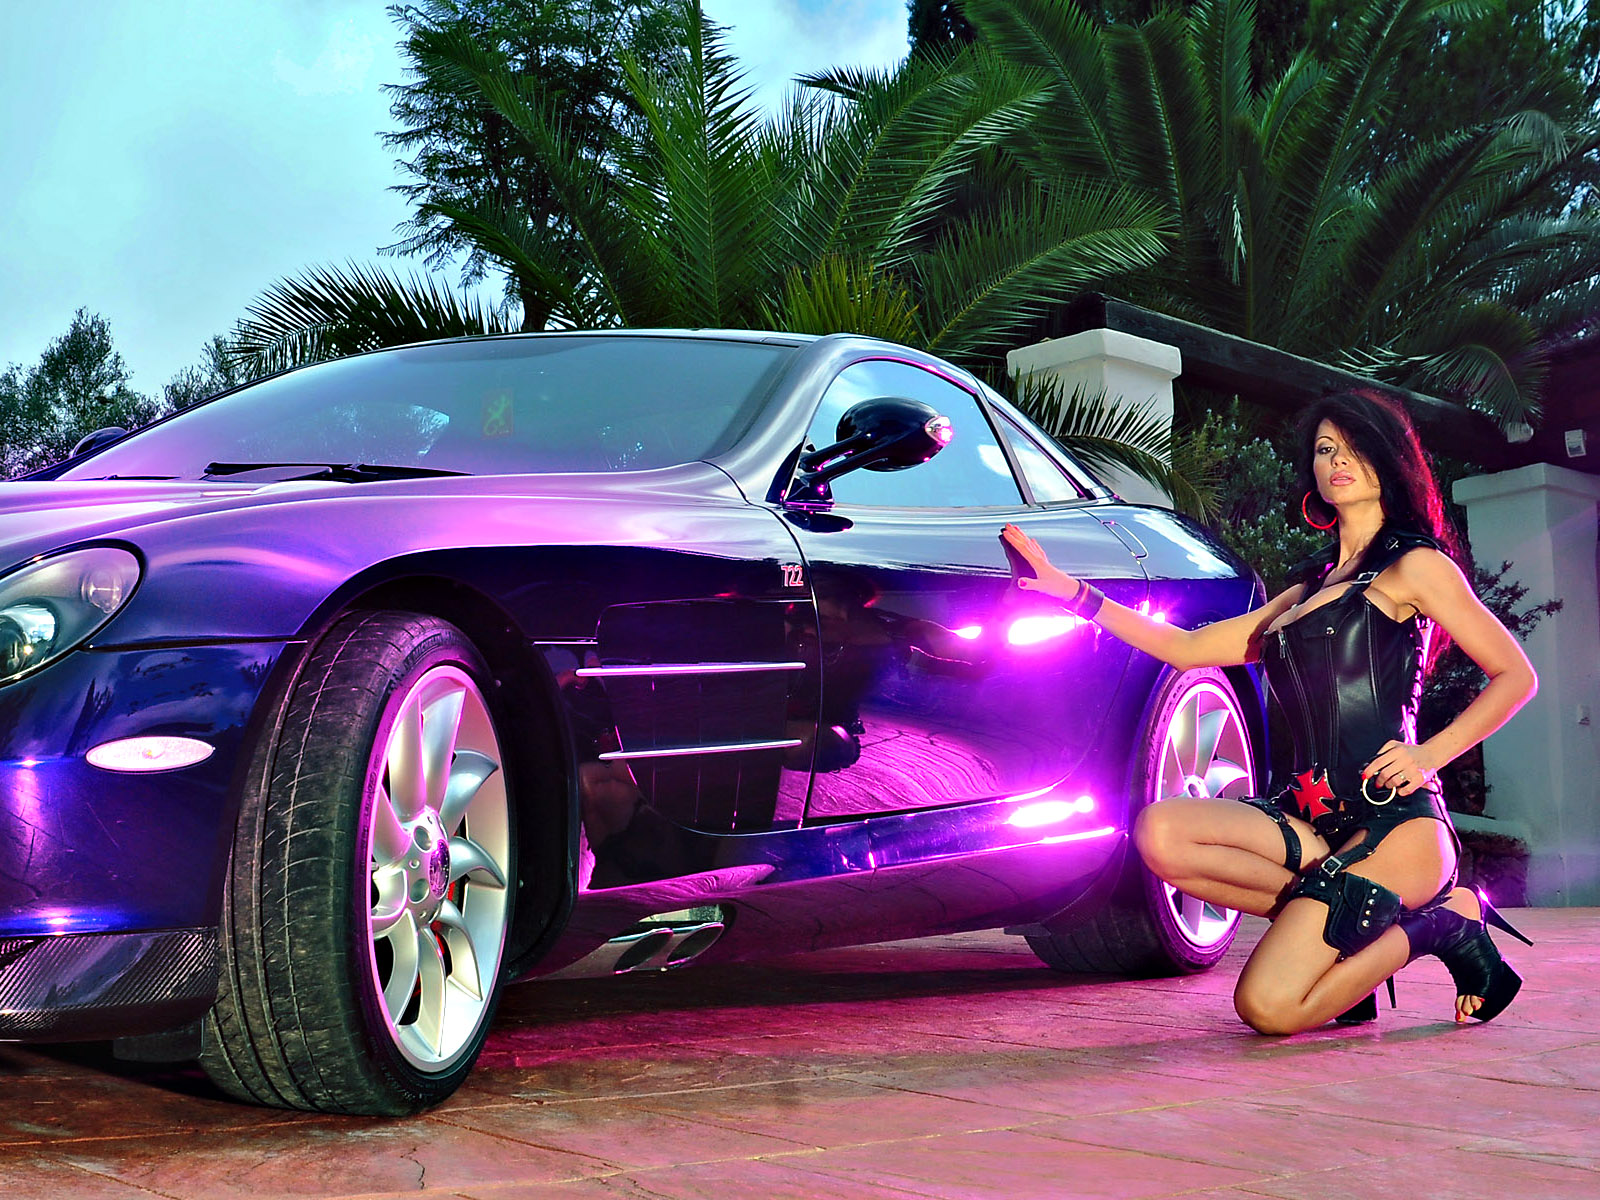 60 sexy cars and girls wallpaper and pictures - Gir desktop wallpaper ...